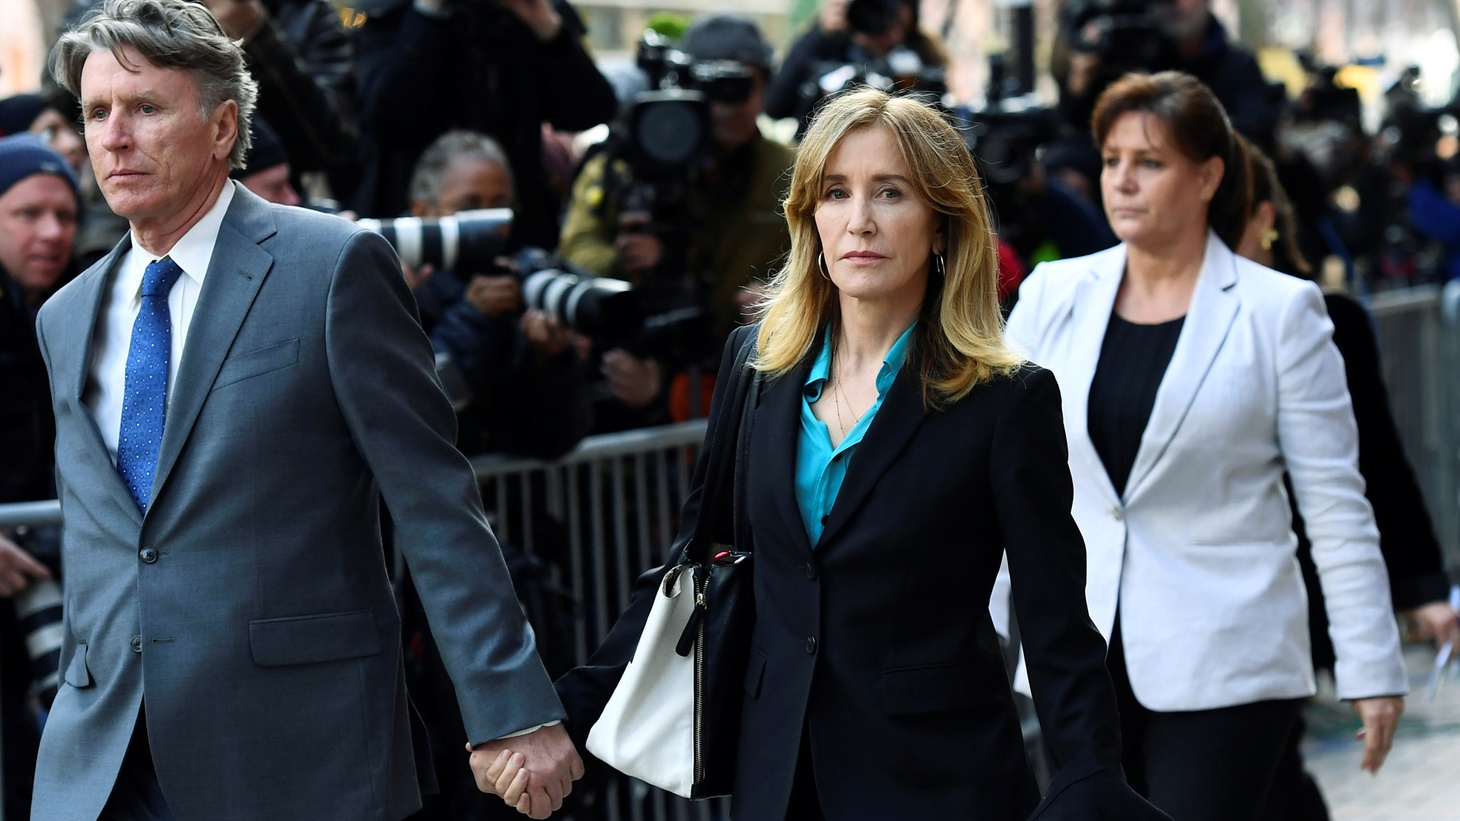 Actor Felicity Huffman leaves the federal courthouse after facing charges in a nationwide college admissions cheating scheme in Boston, Massachusetts, U.S., April 3, 2019.